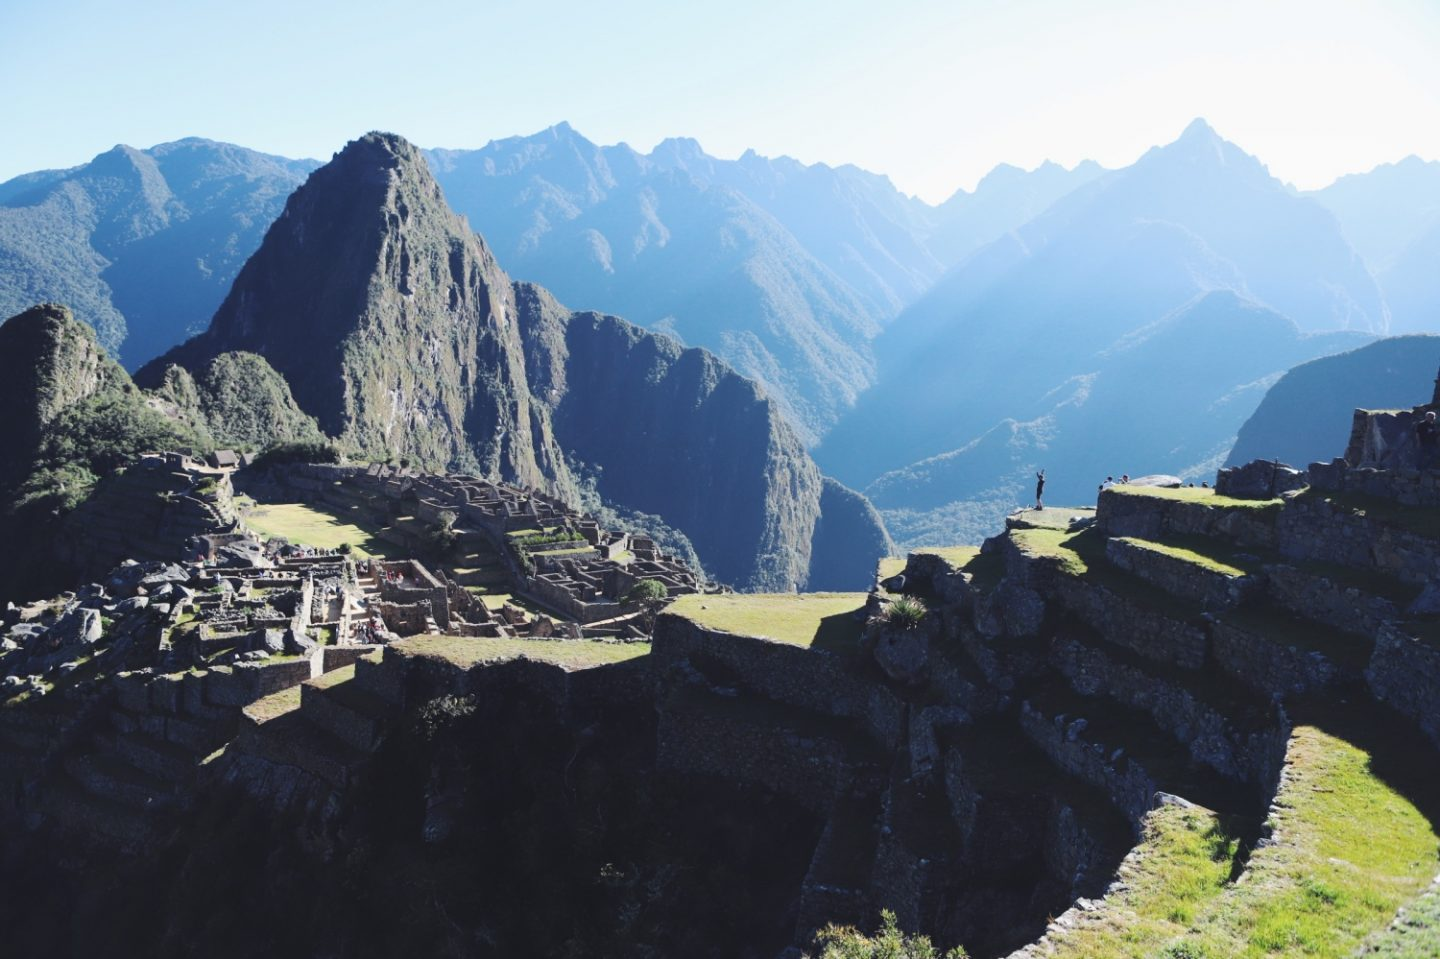 4 Tage Inca Jungle Trek nach Machu Picchu - willascherrybomb - yvonne karnath